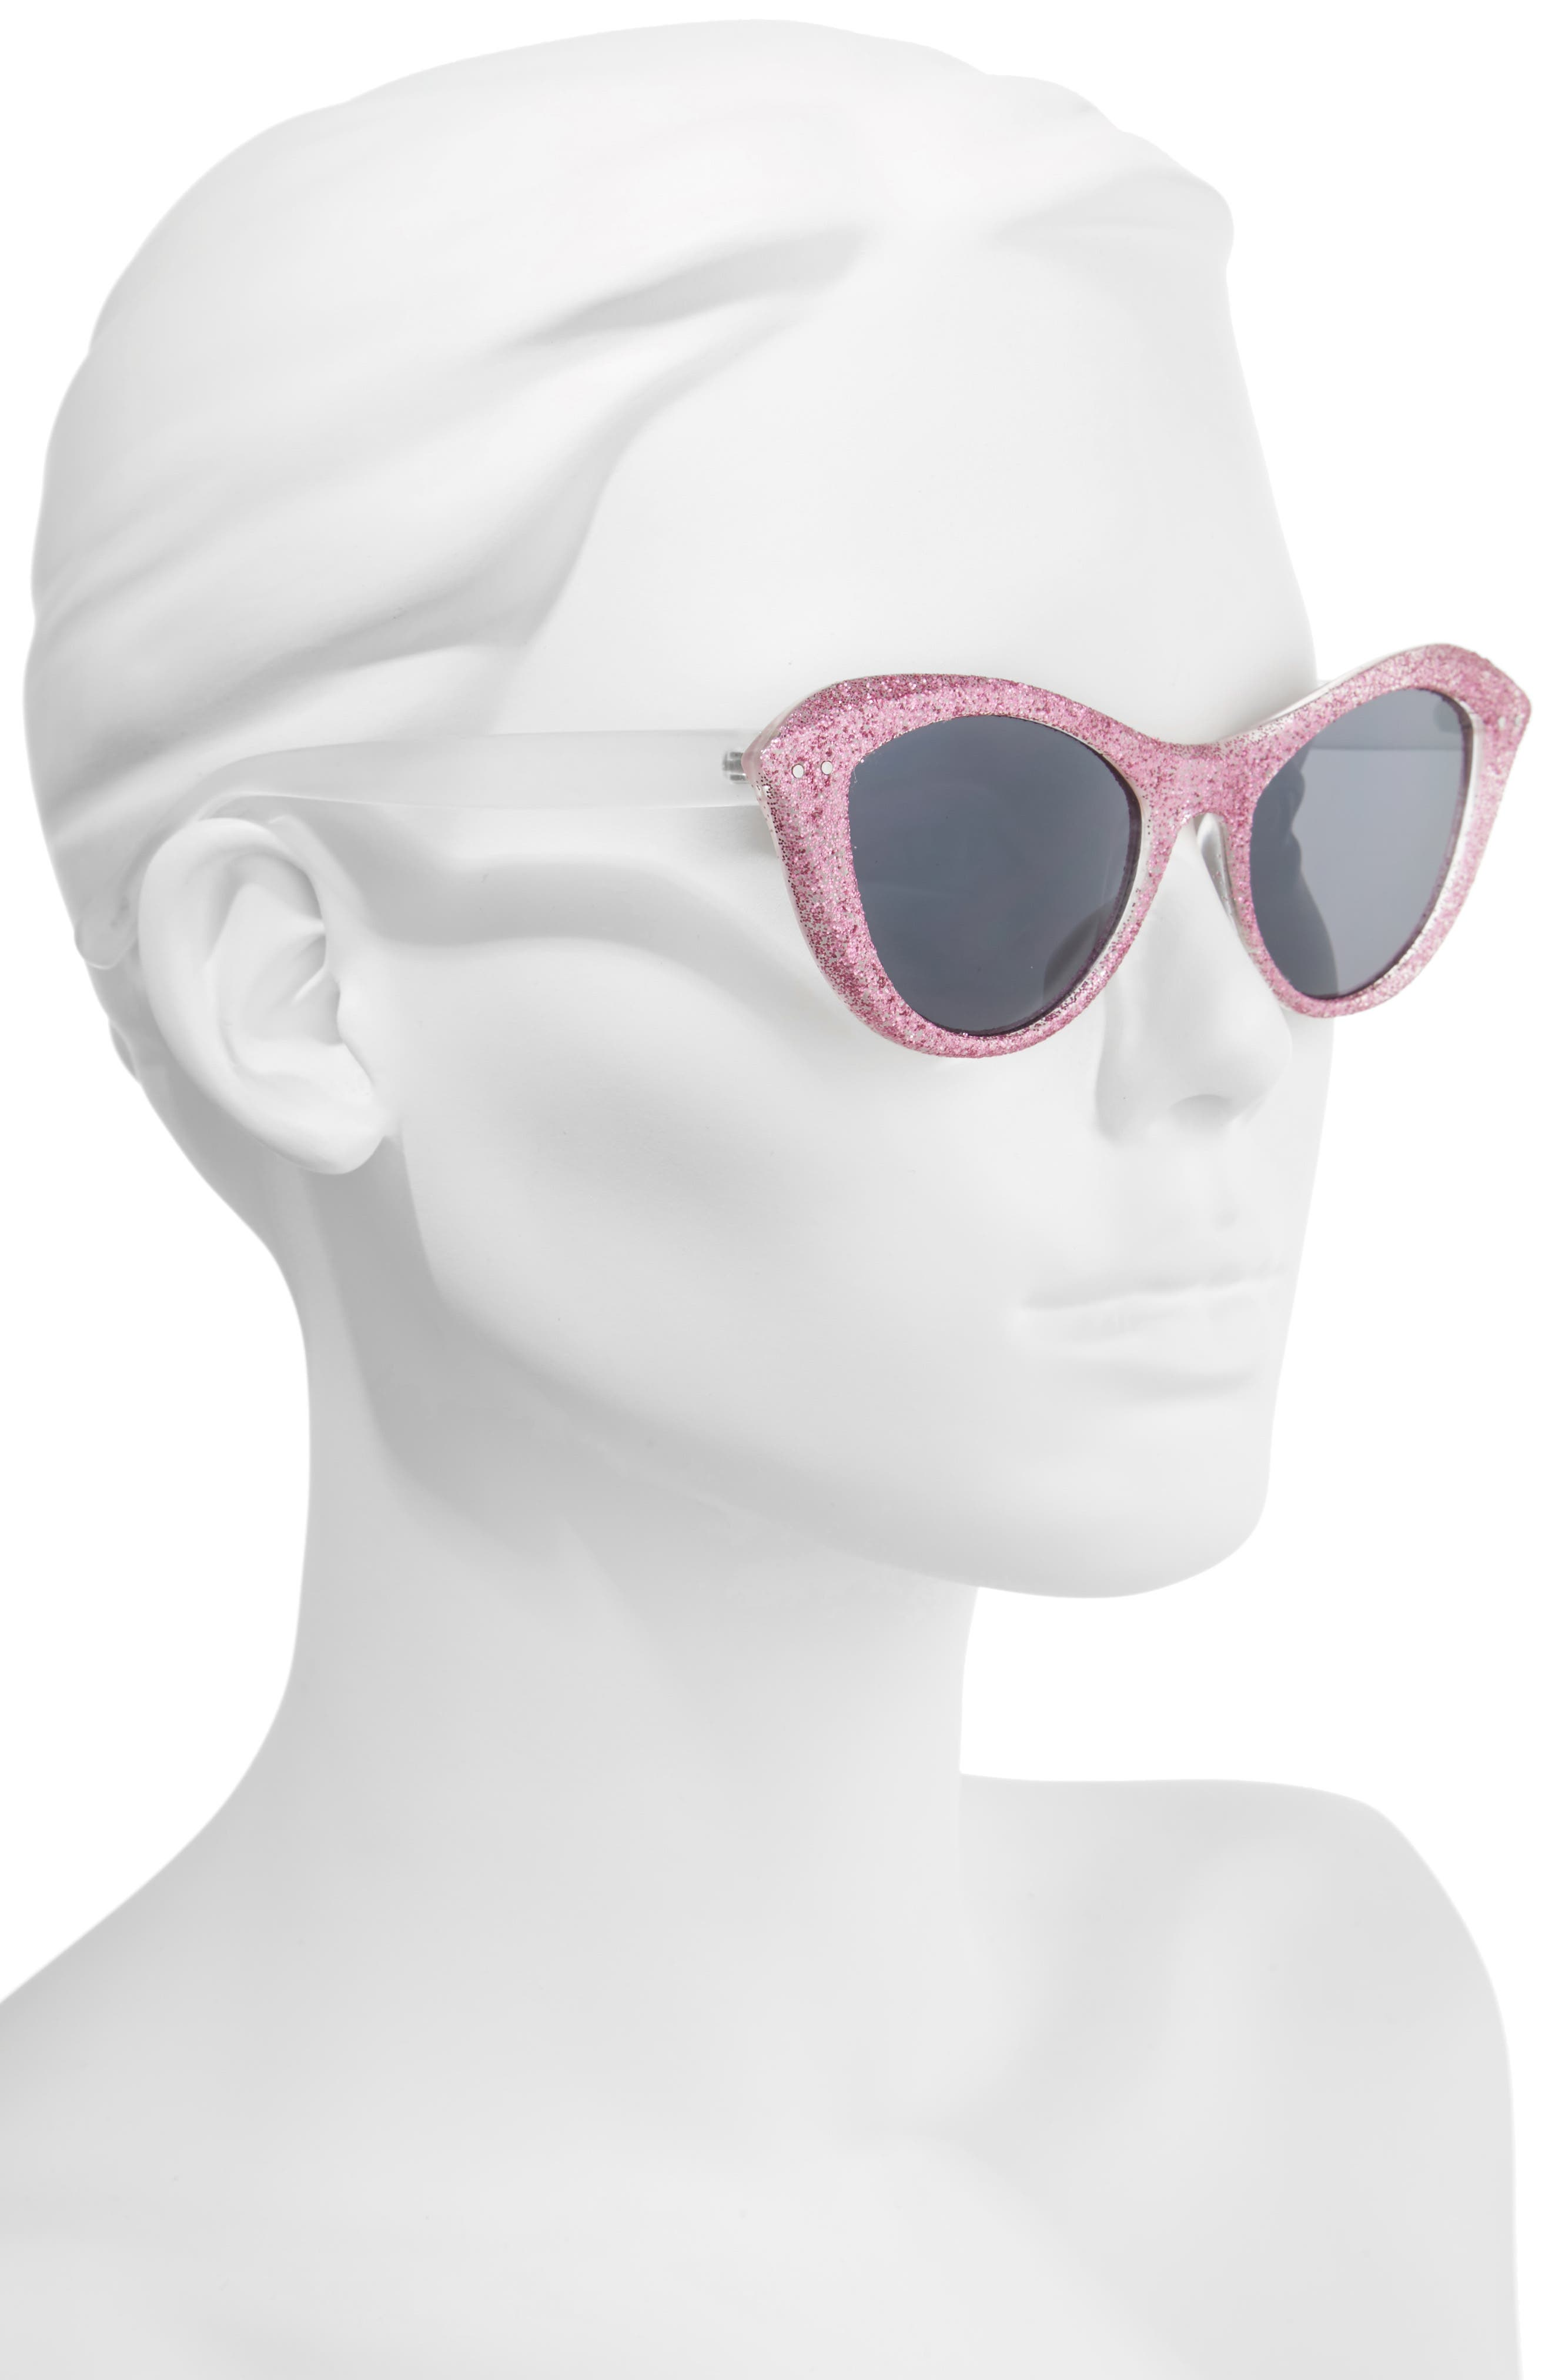 50mm Retro Cat Eye Sunglasses,                             Alternate thumbnail 2, color,                             100